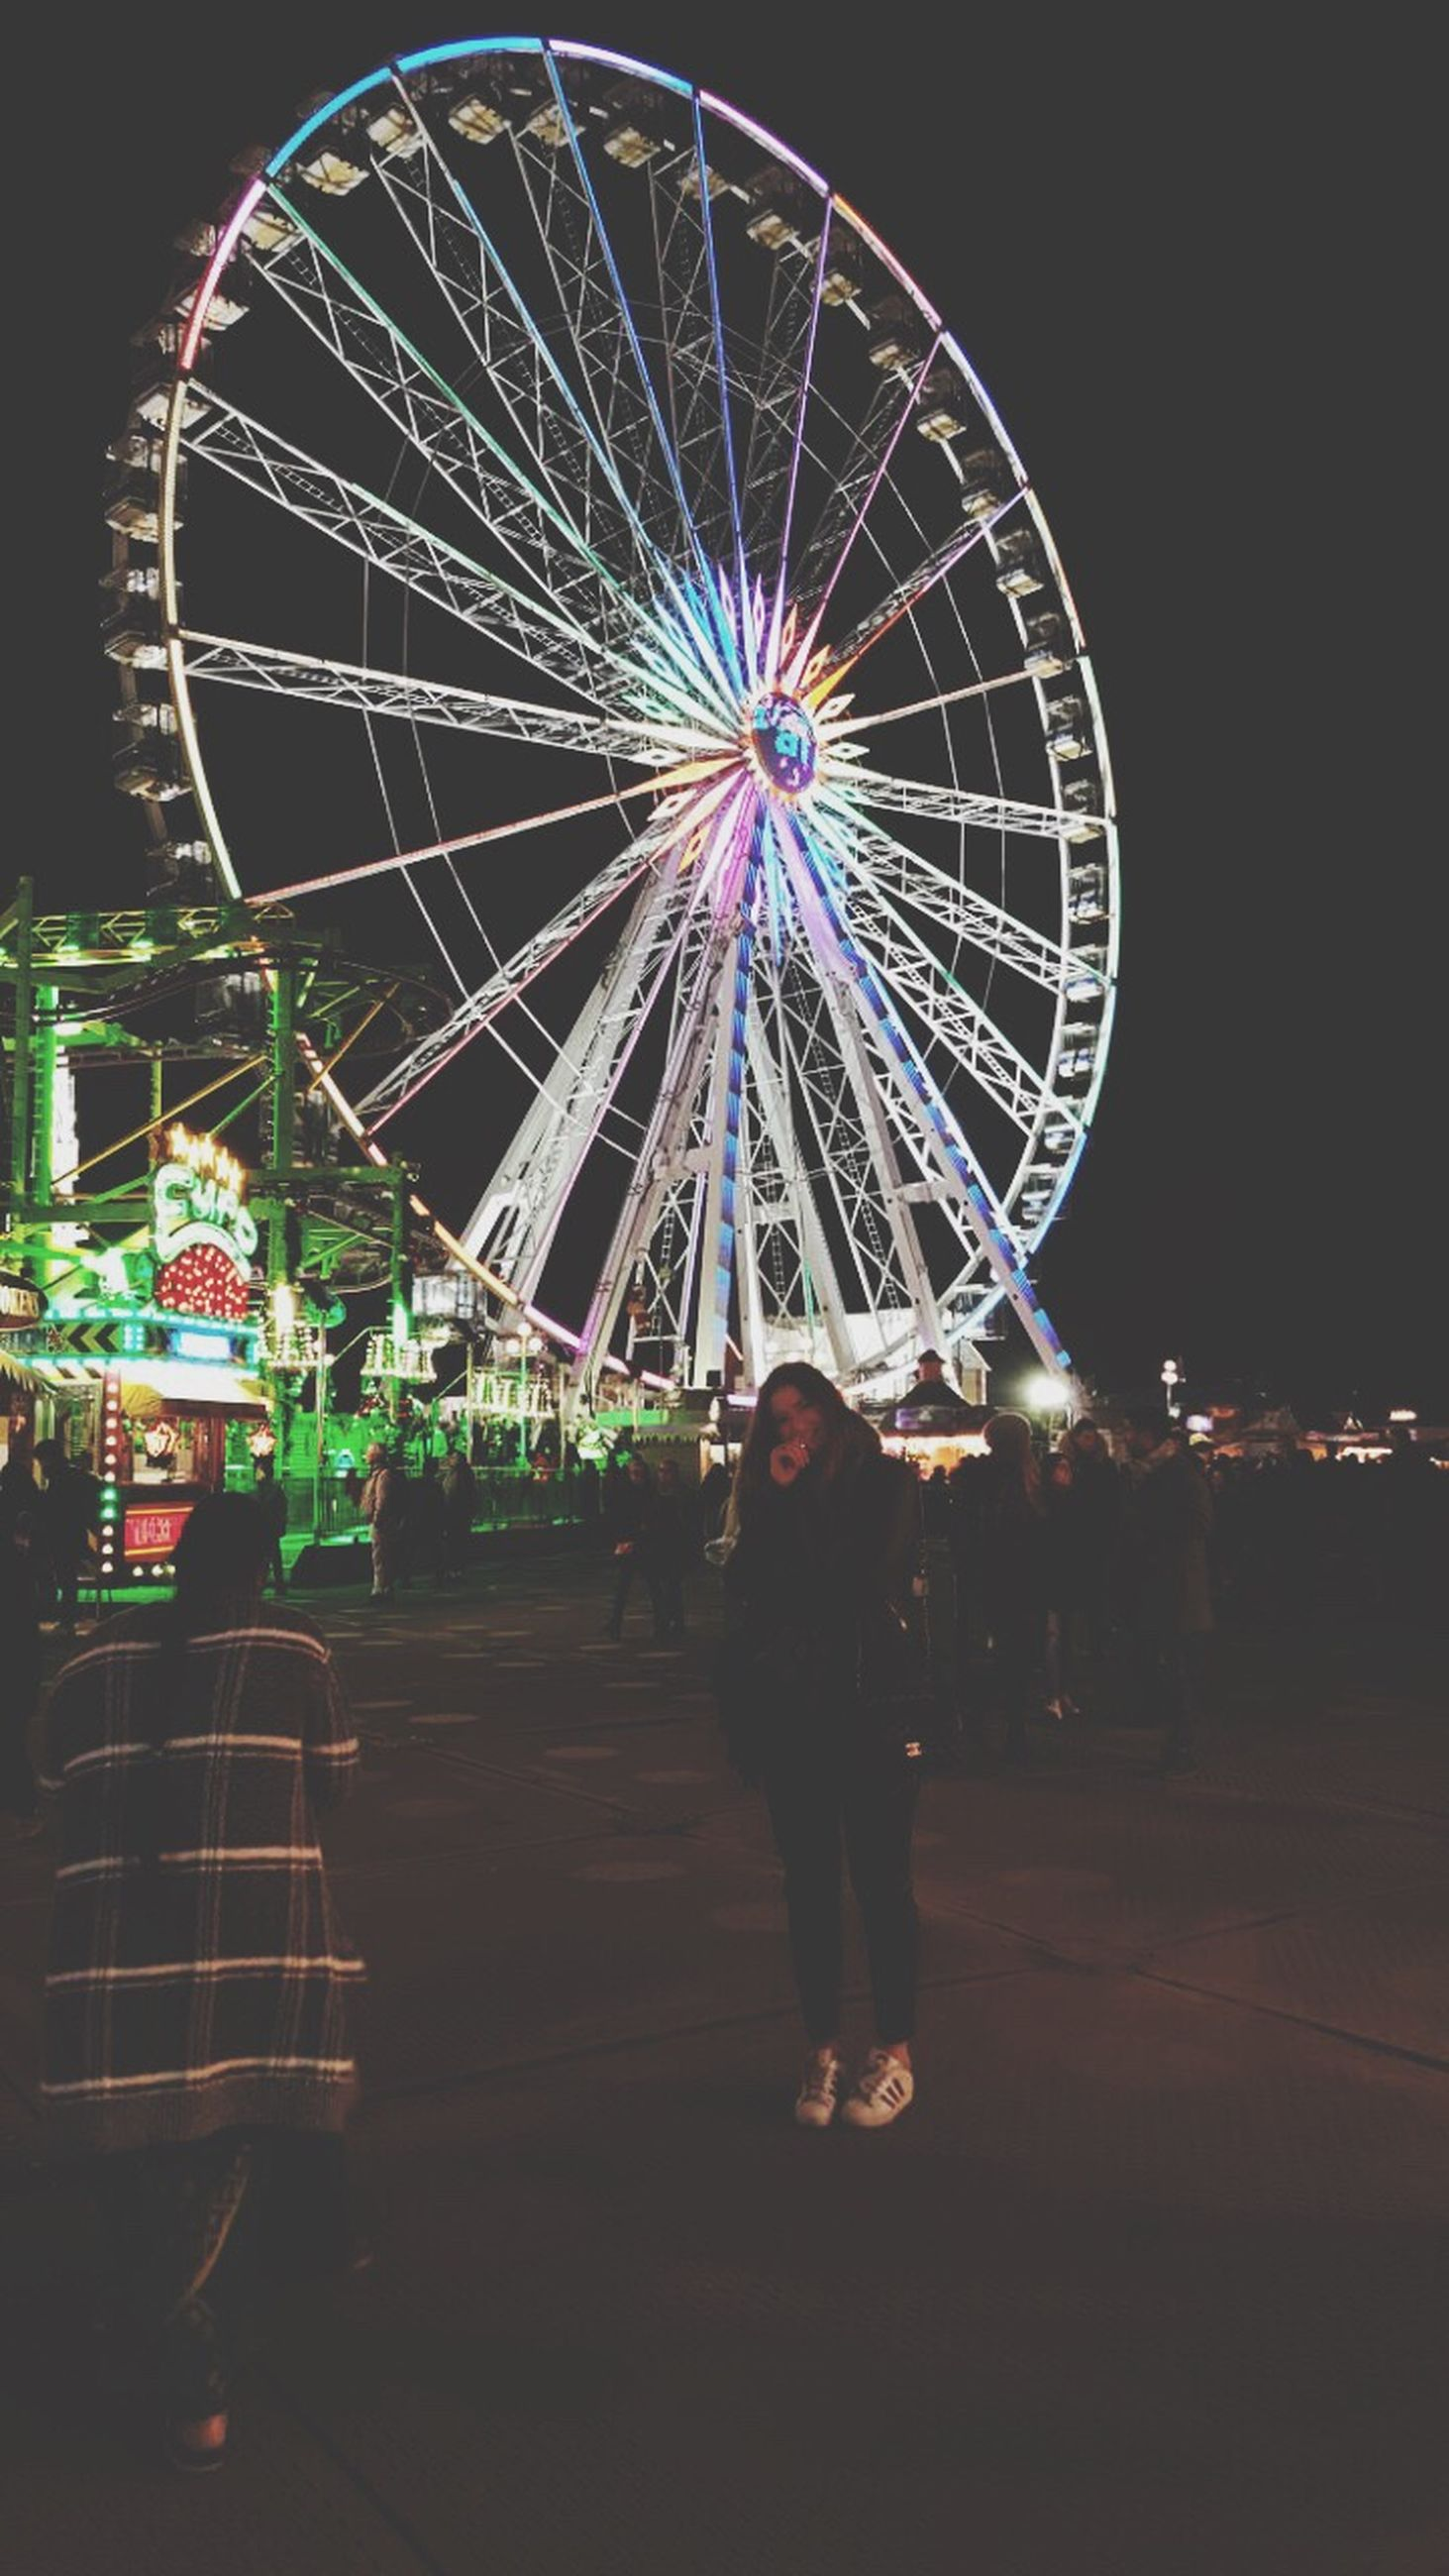 ferris wheel, illuminated, night, full length, rear view, amusement park, one person, sky, people, outdoors, adult